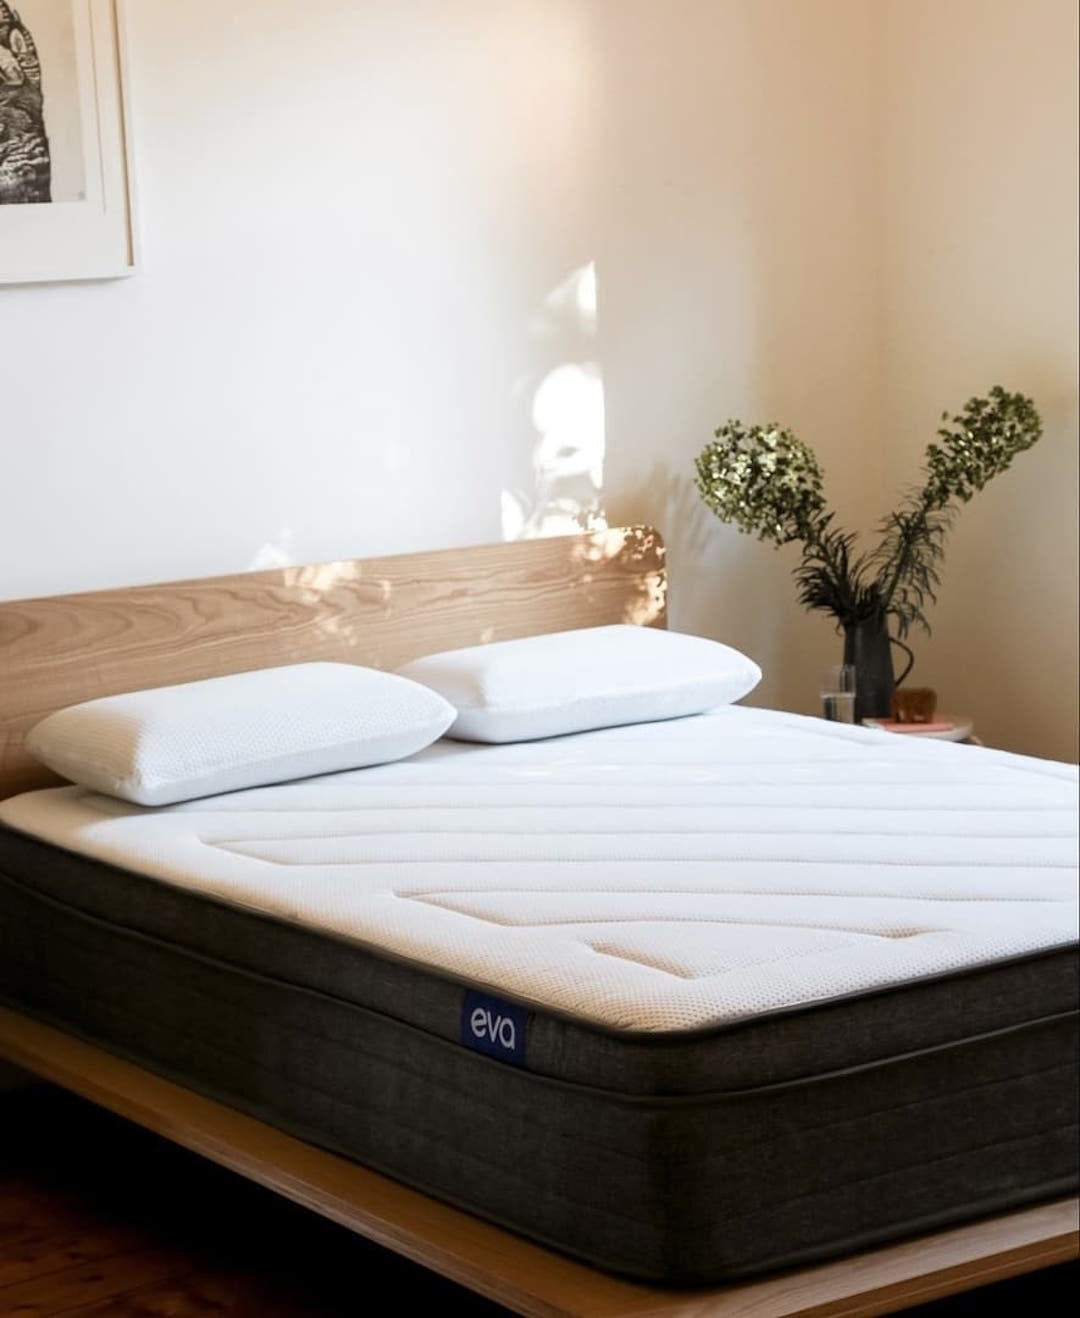 A bare mattress looks inviting in a sun-drenched room.